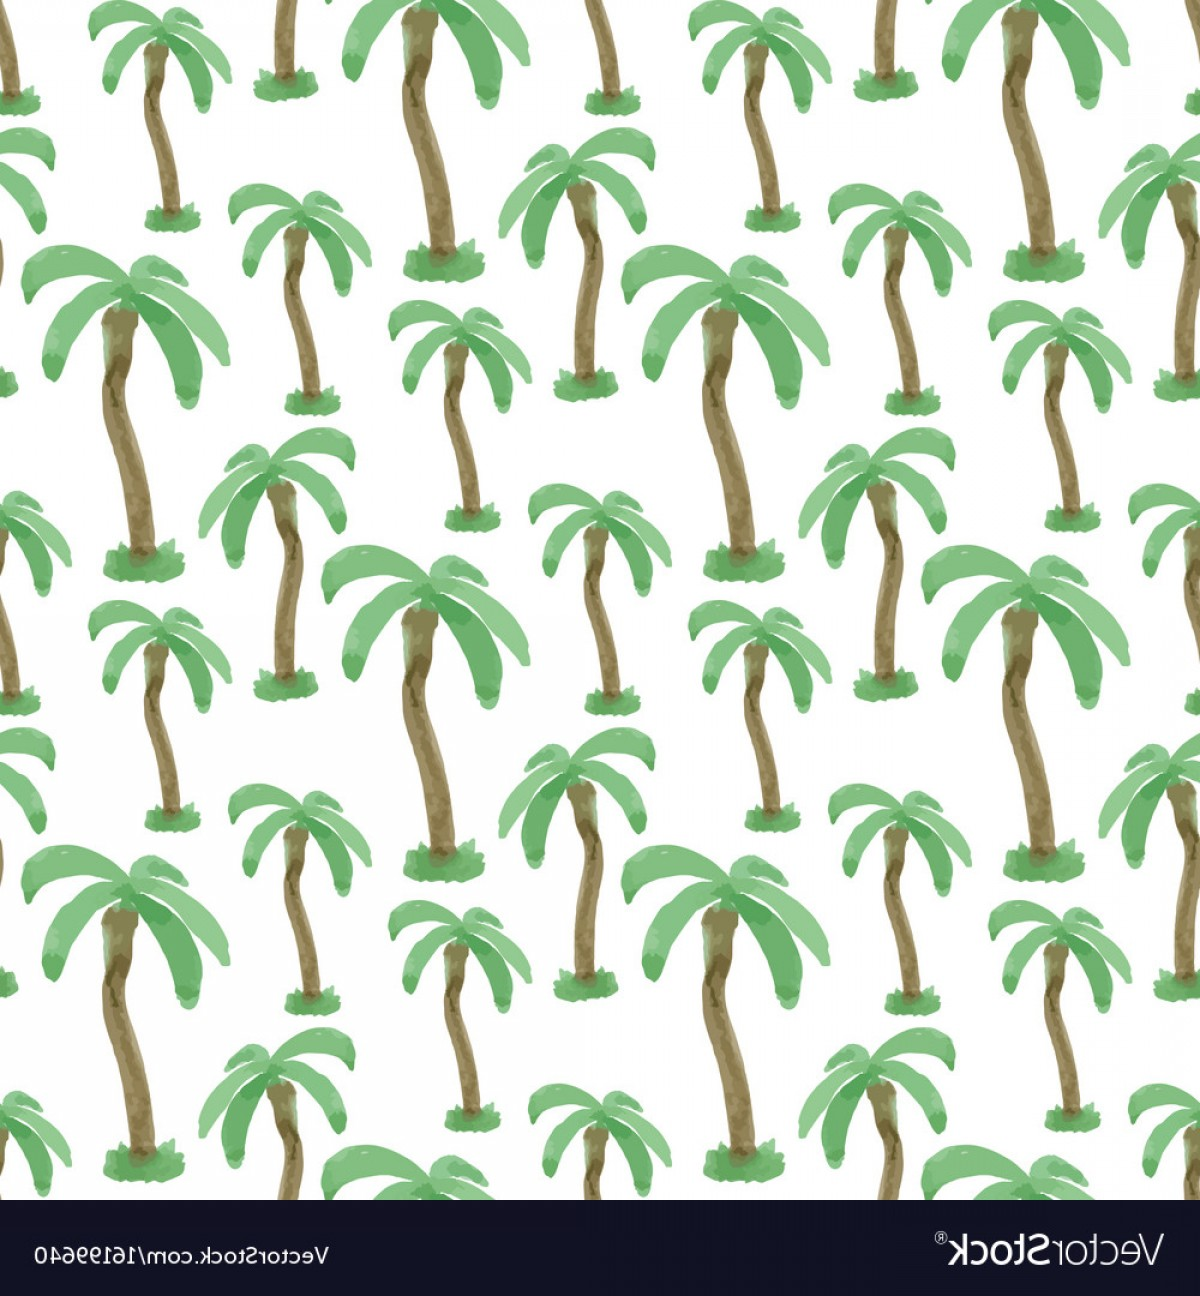 Watercolor Palm Tree Vector: Seamless Pattern With Watercolor Palm Trees Vector